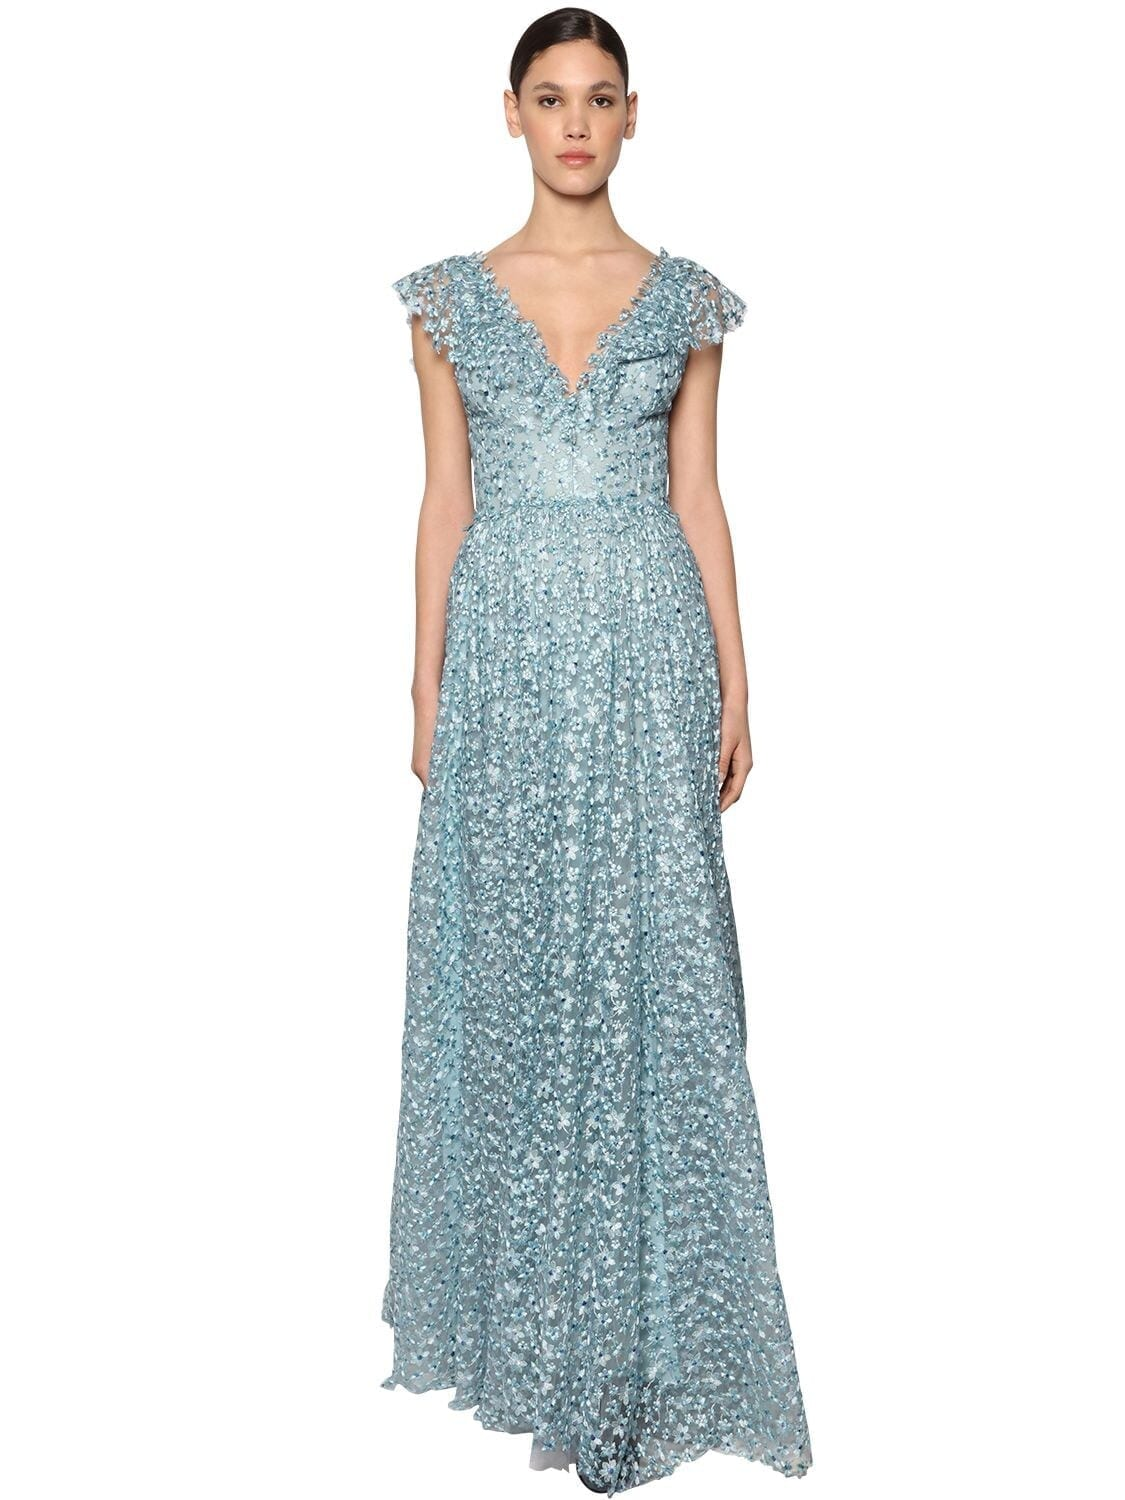 LUISA BECCARIA Long Embroidered Chiffon Dress